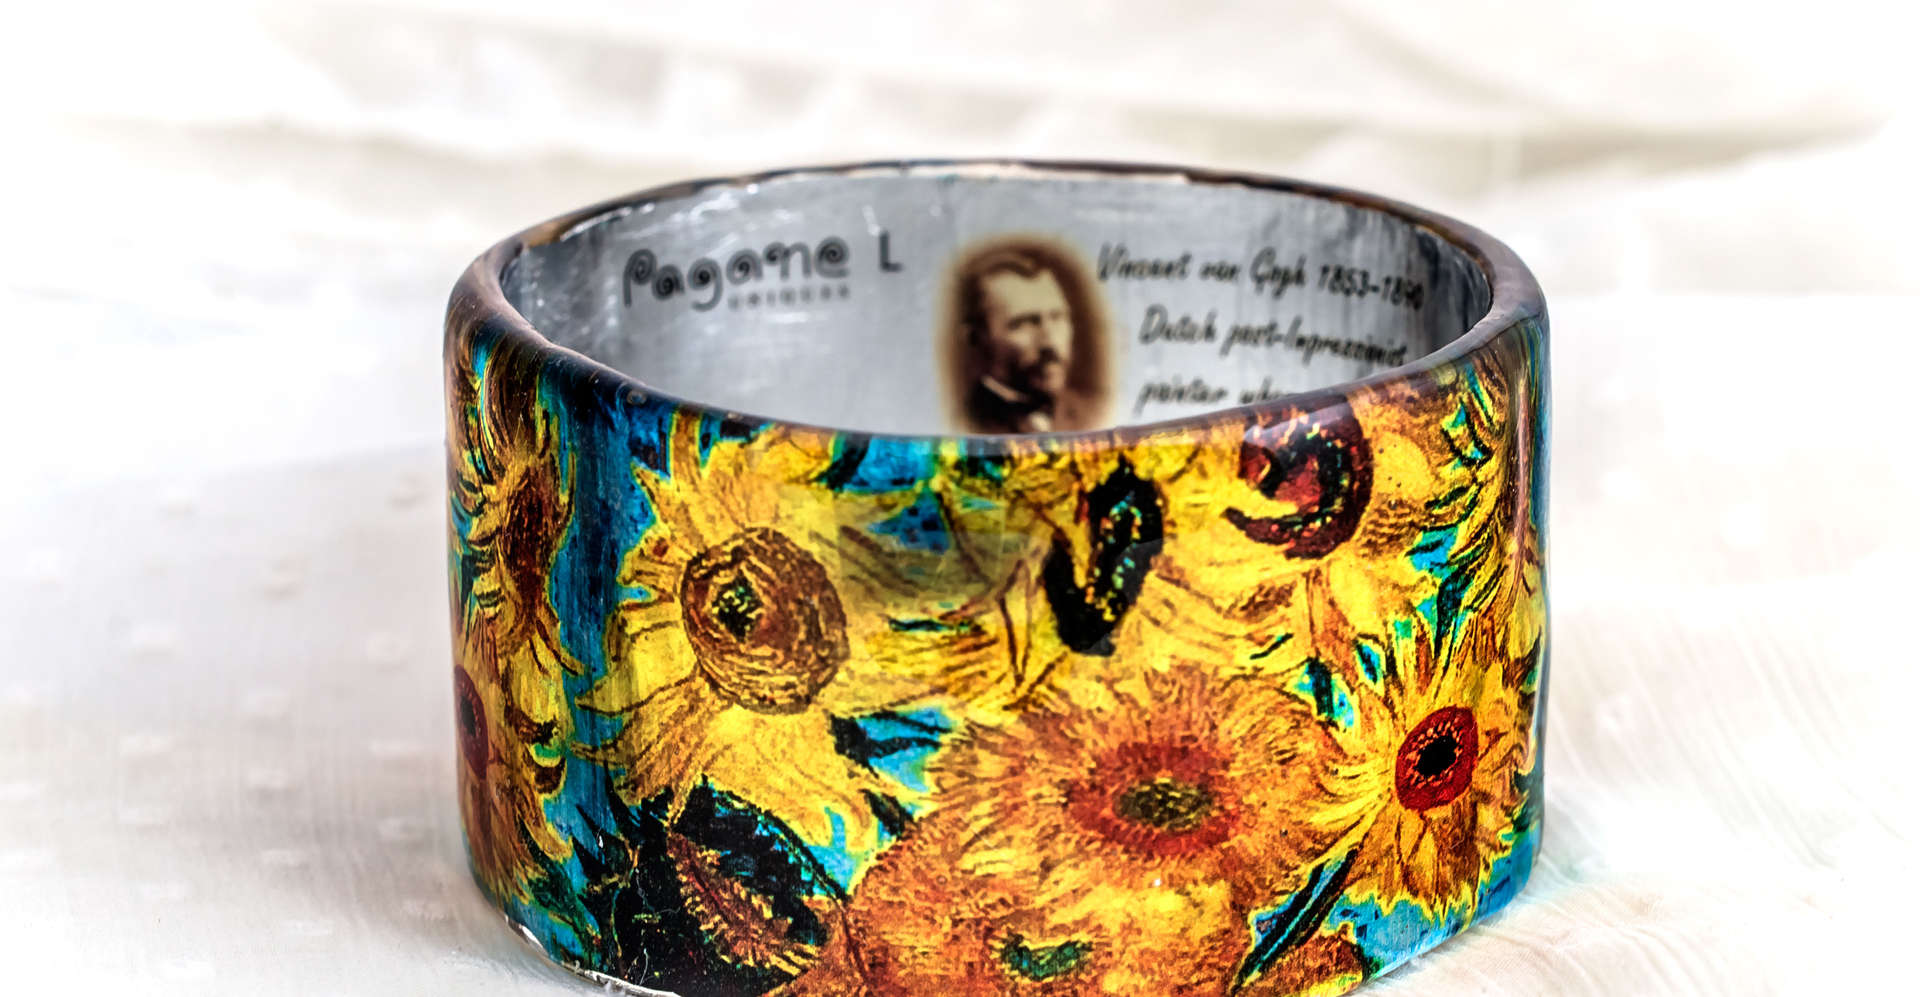 High Resin Bangle By PAGANE uniques (8).